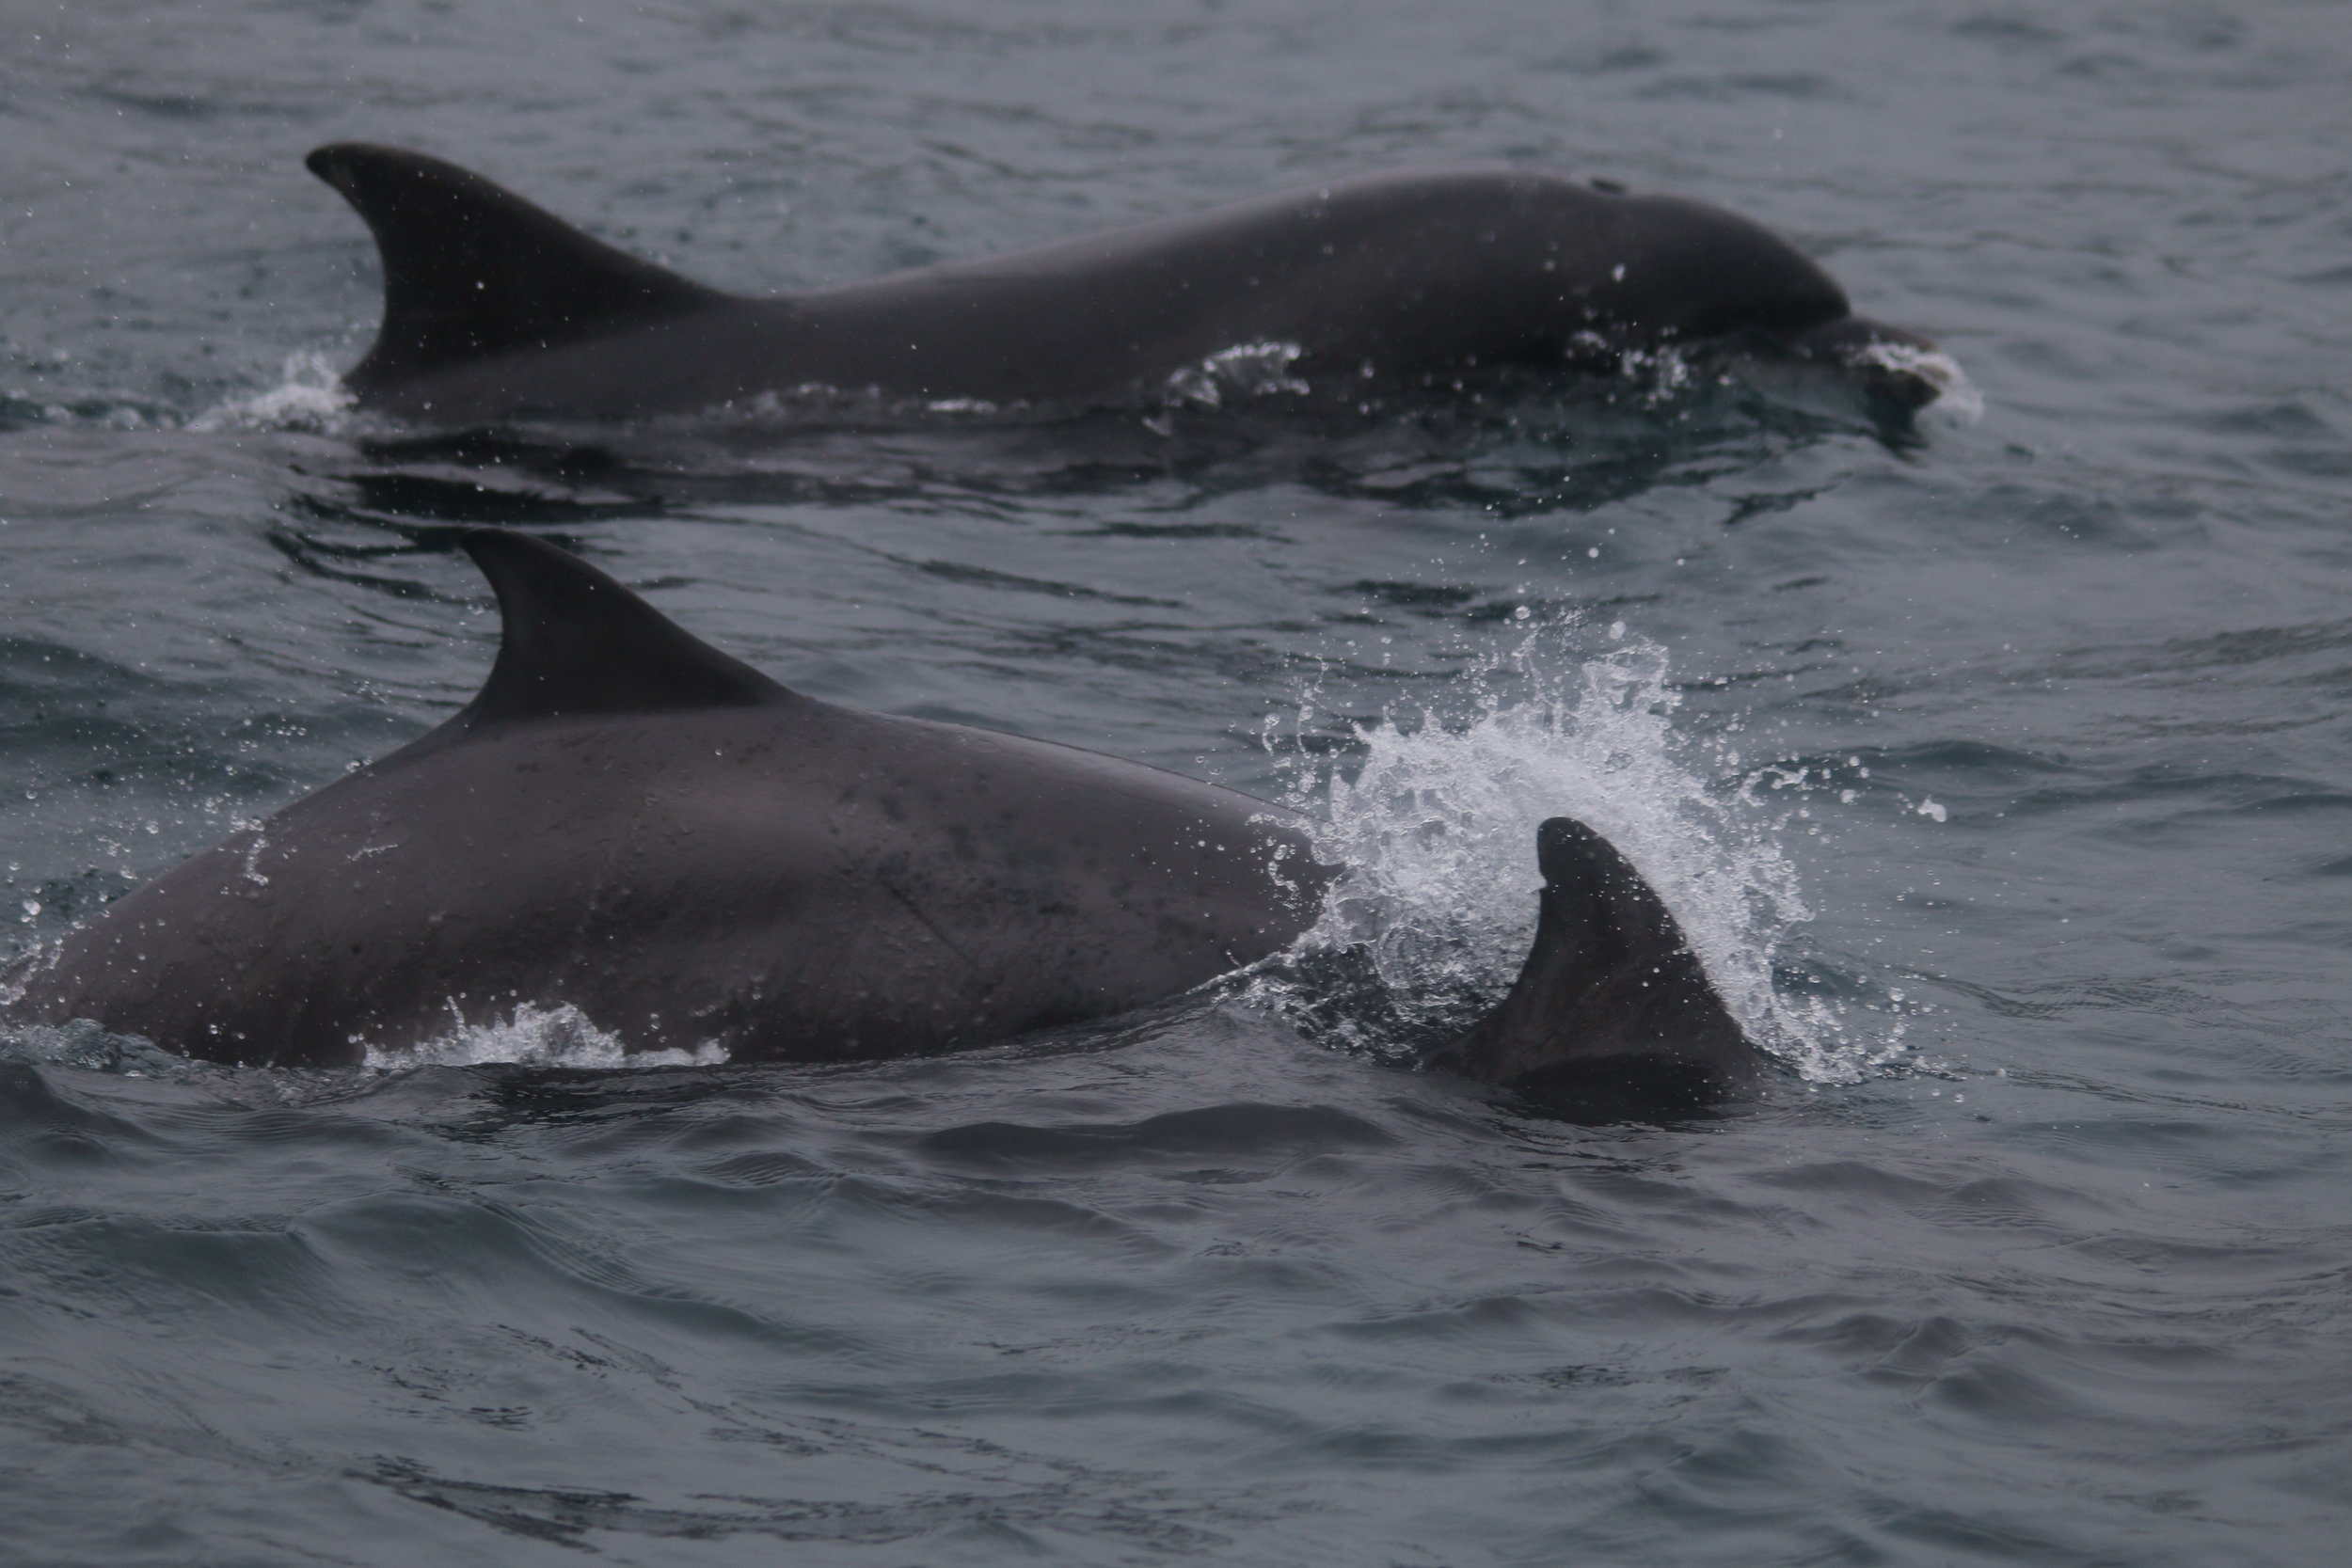 """Bottlenose dolphins from the Sound of Barra community, more fondly known as the """"Barra Boys"""" until they had babies!"""